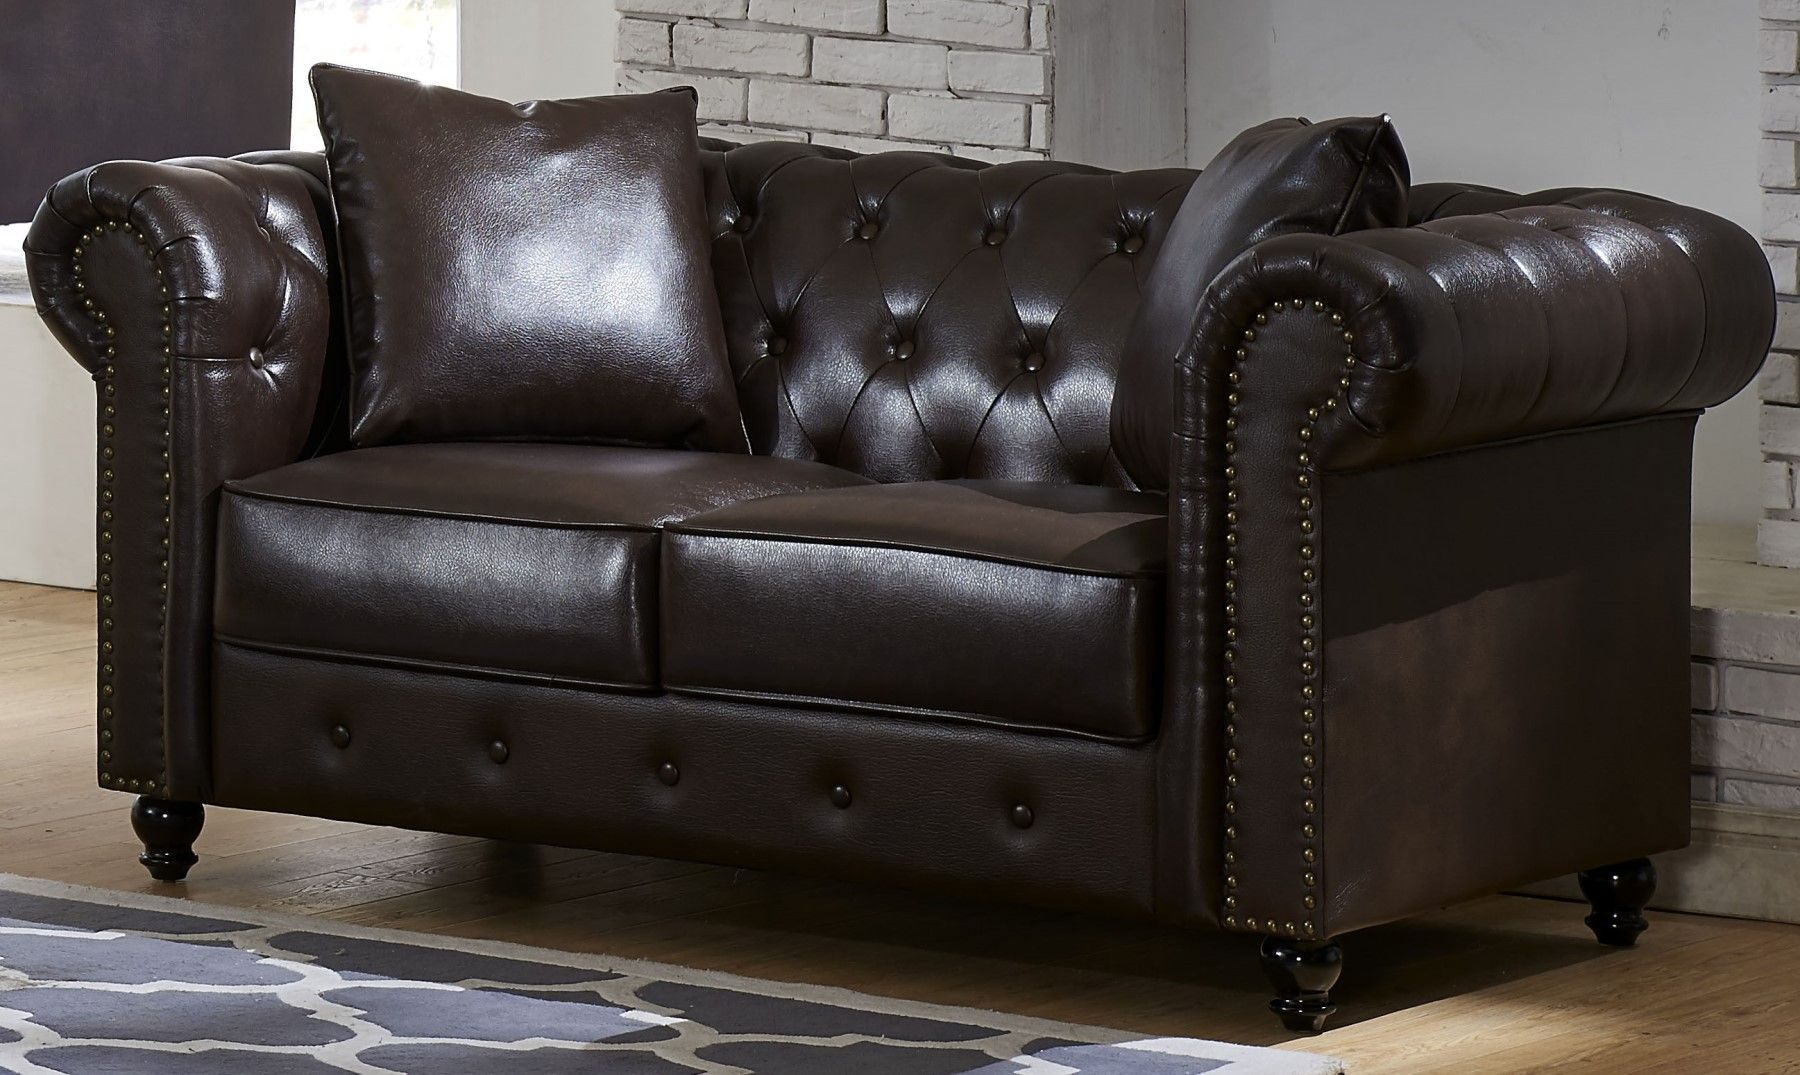 Salisbury Button Tufted Nailhead Chesterfield Sofa Intended For Leather Chesterfield Sofas (View 1 of 15)